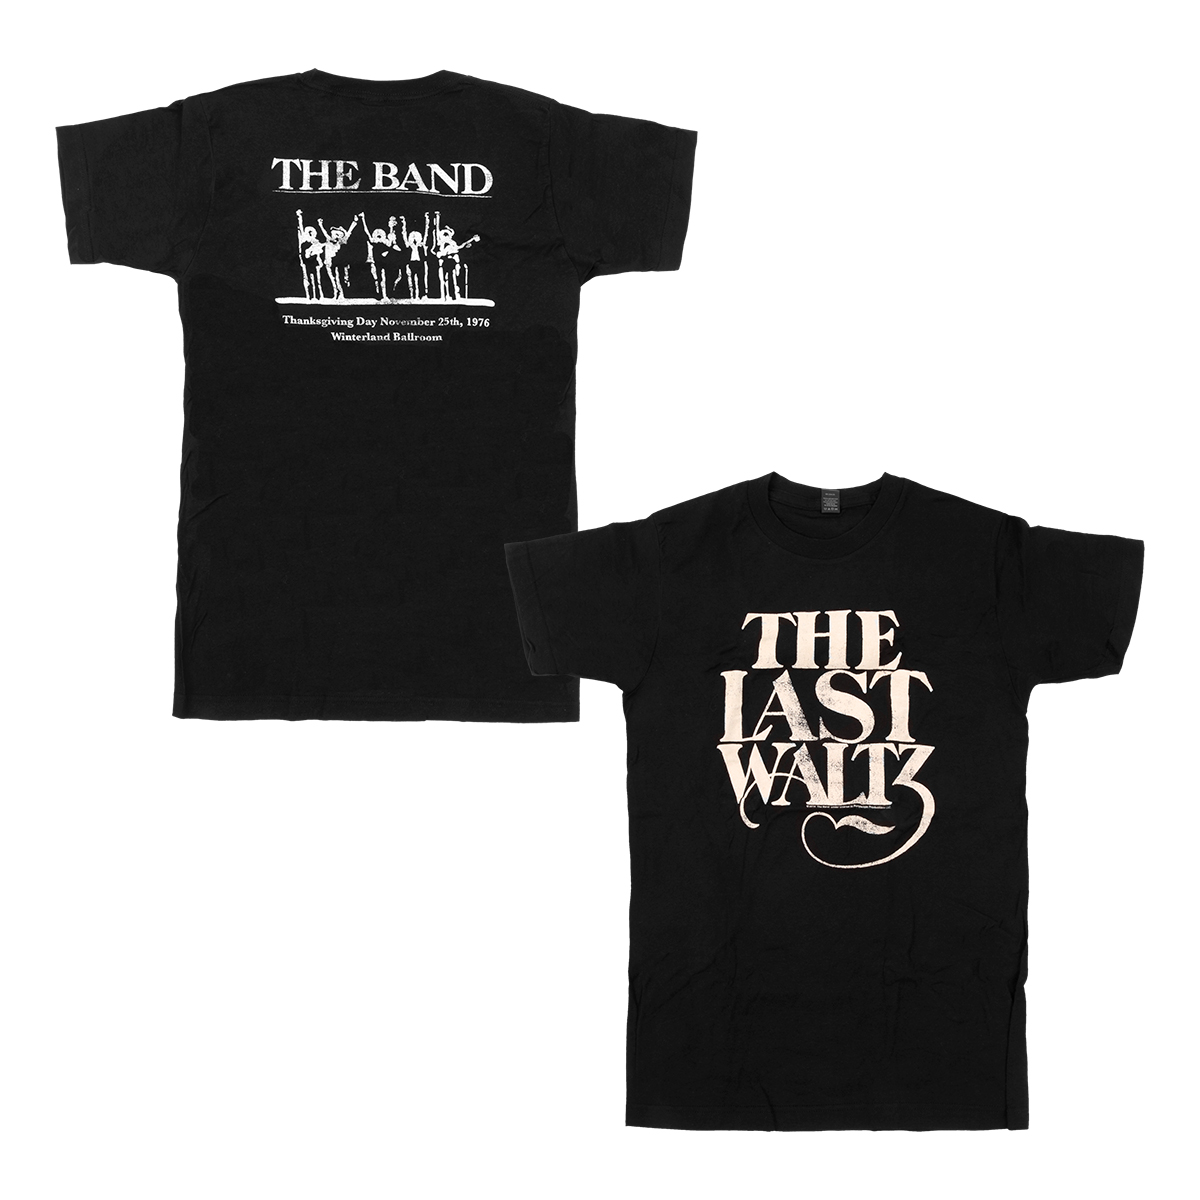 THE LAST WALTZ T-SHIRT